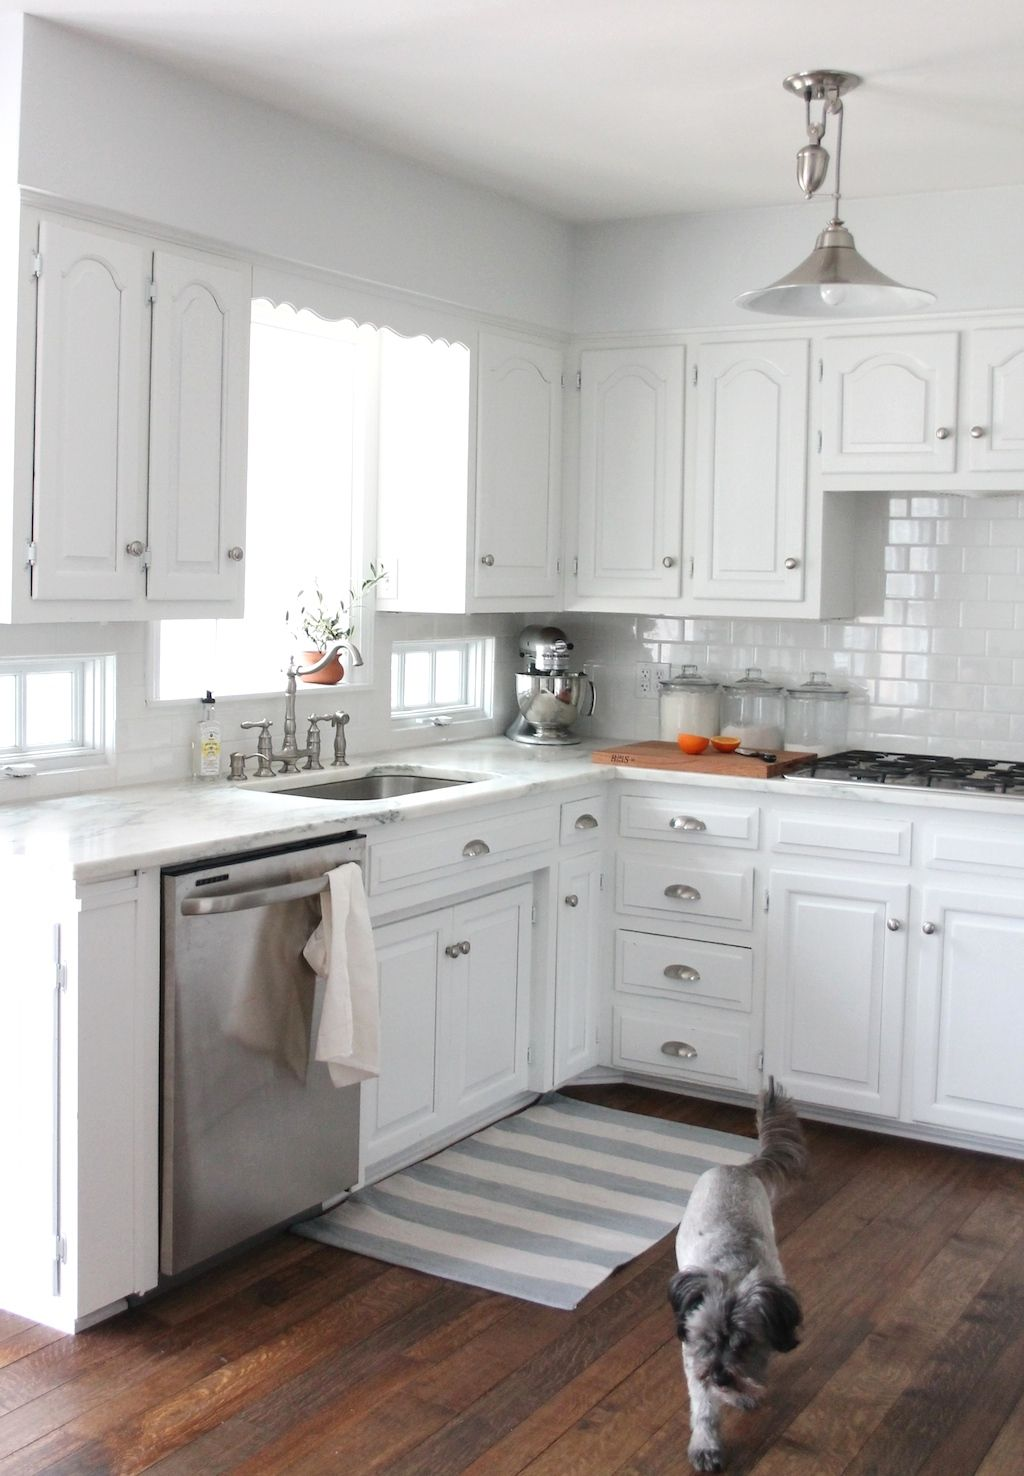 Explore Small White Kitchens And More! Part 64